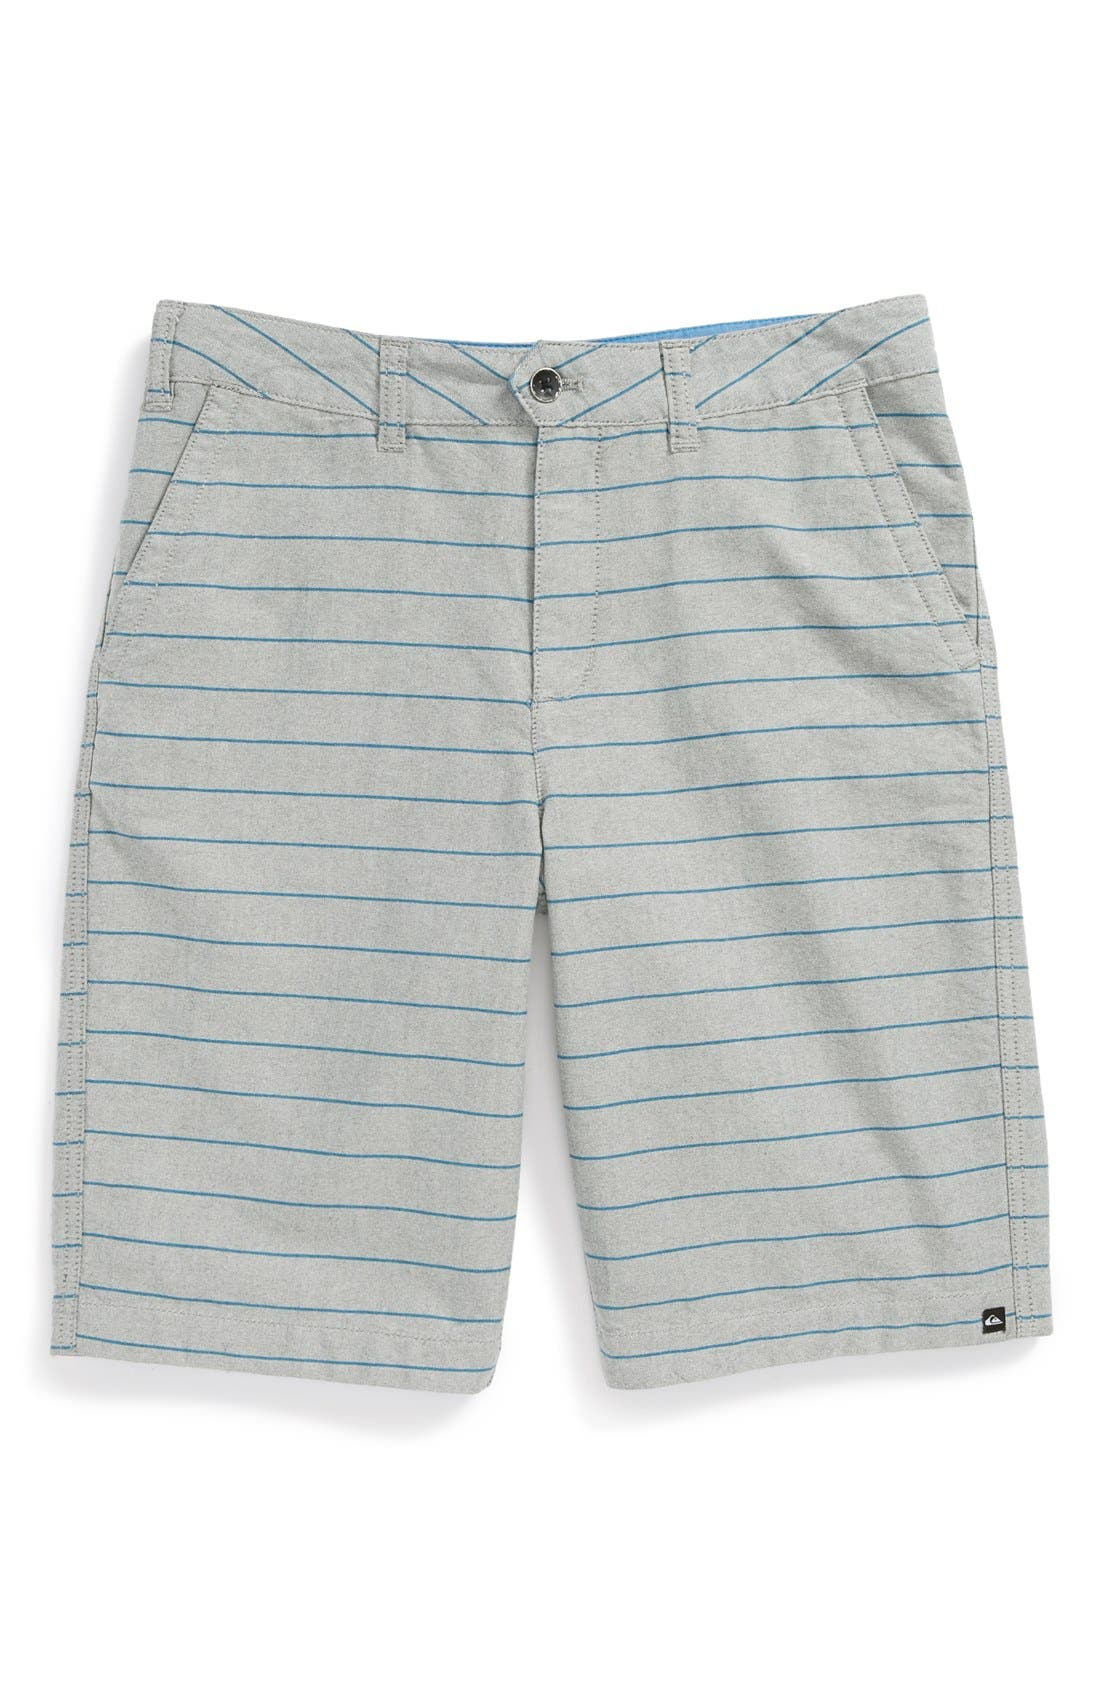 Alternate Image 1 Selected - Quiksilver Stripe Shorts (Big Boys)